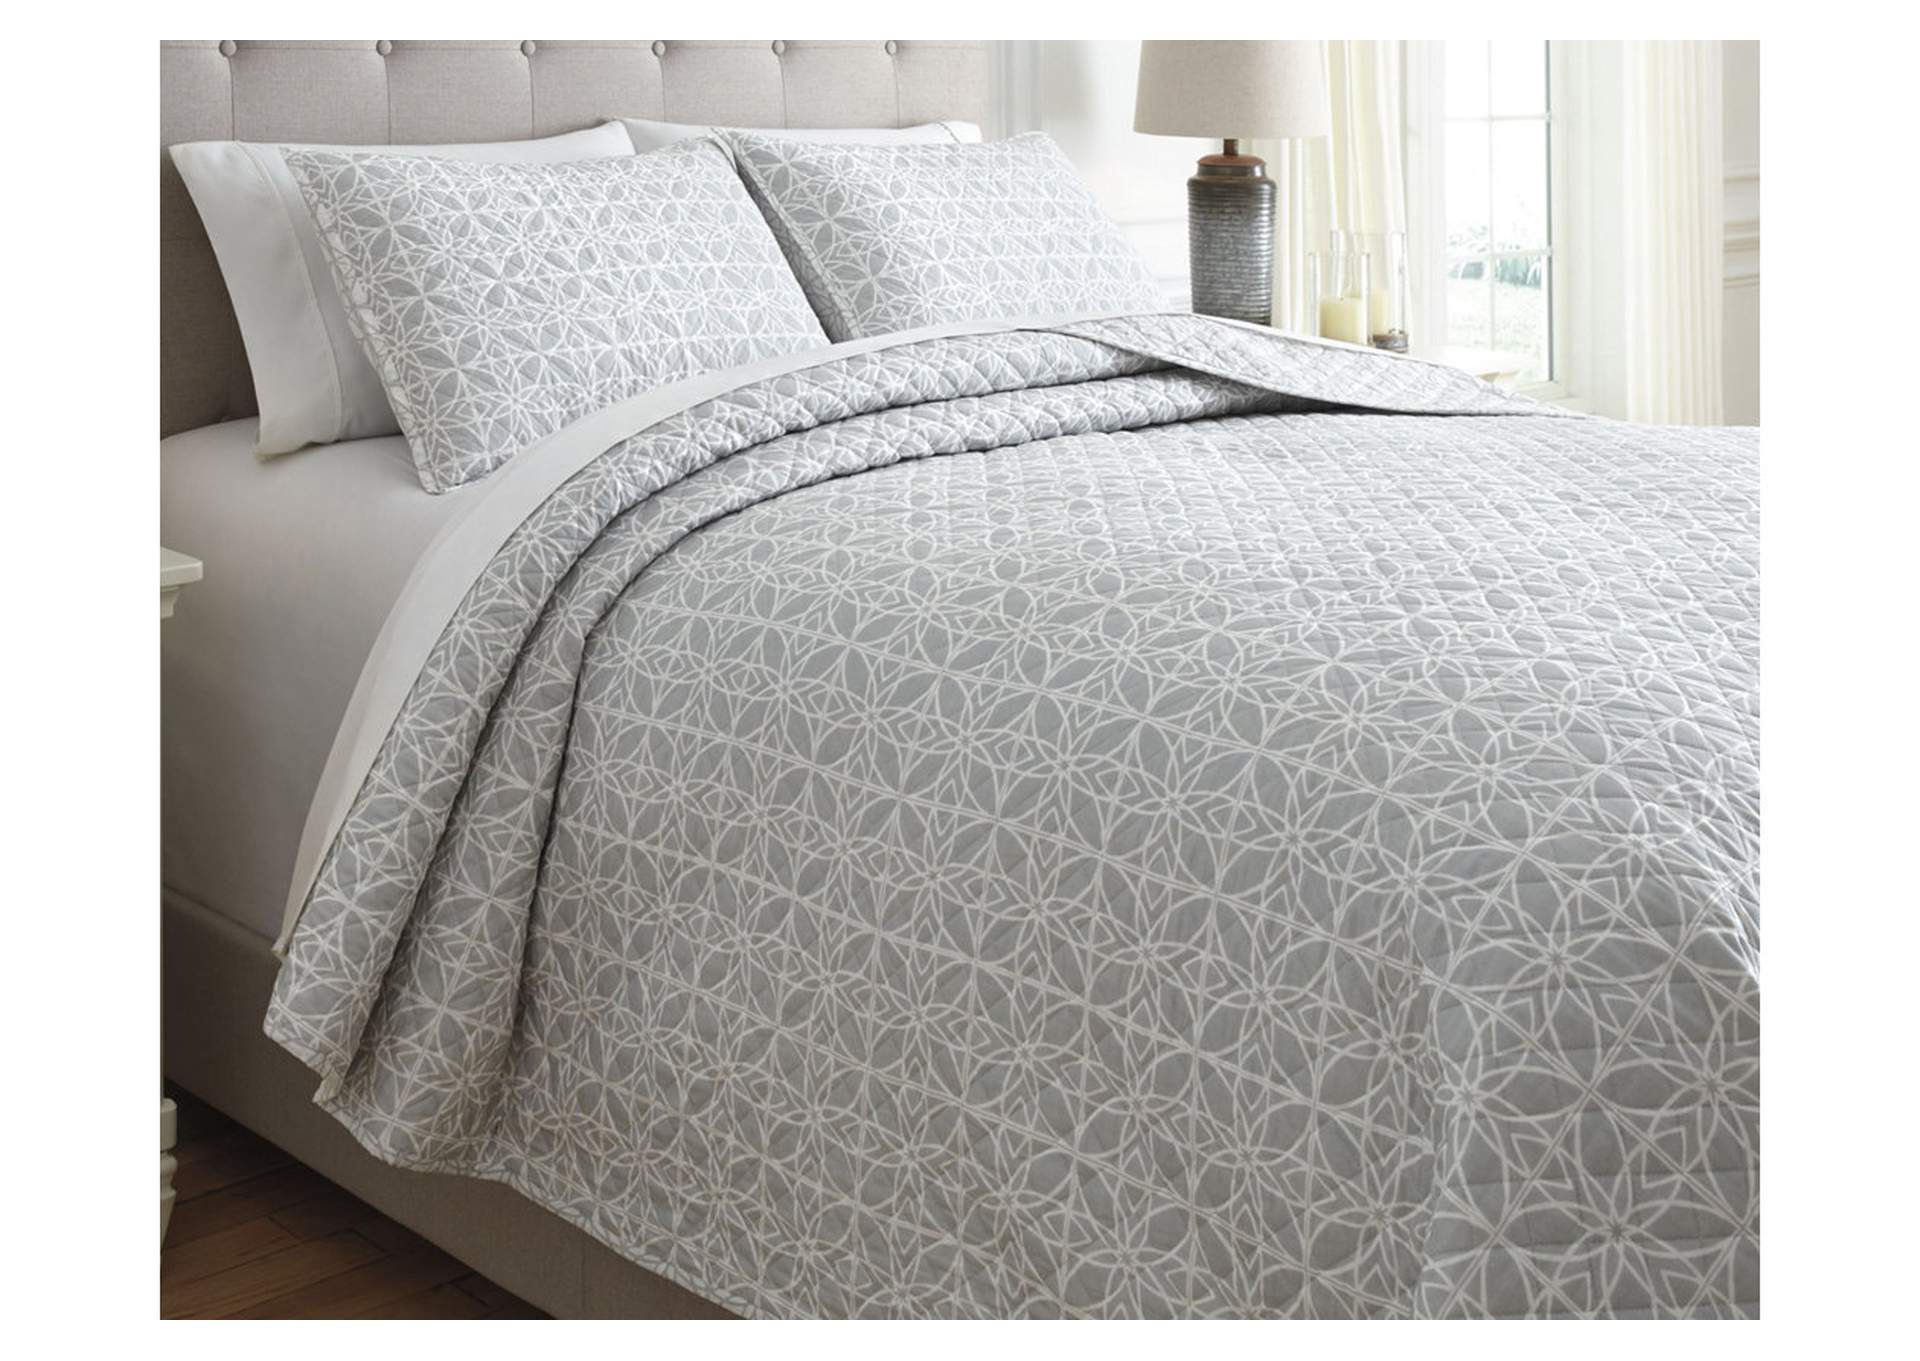 Mayda Gray/White King Quilt Set,Signature Design By Ashley